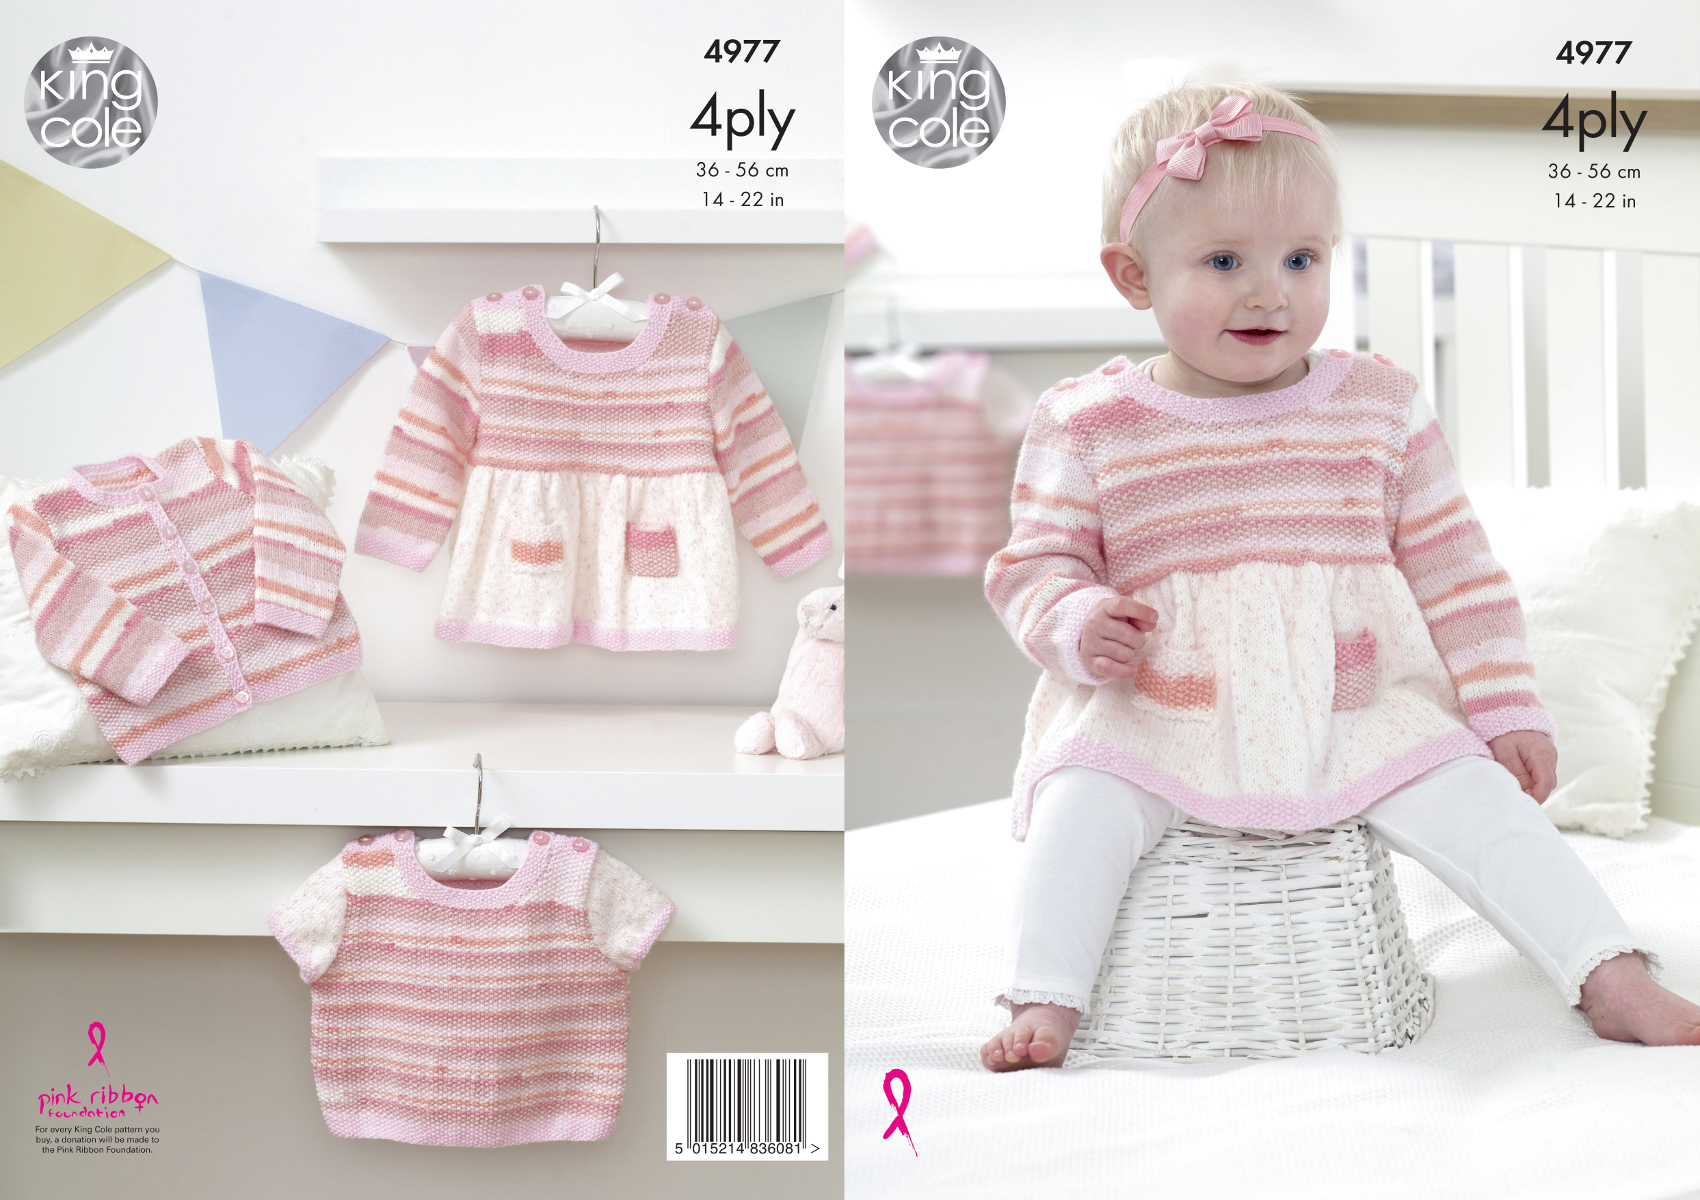 Baby knitting pattern dress cardigan sweater king cole big value baby knitting pattern dress cardigan sweater king cole big value 4 ply 4977 bankloansurffo Image collections